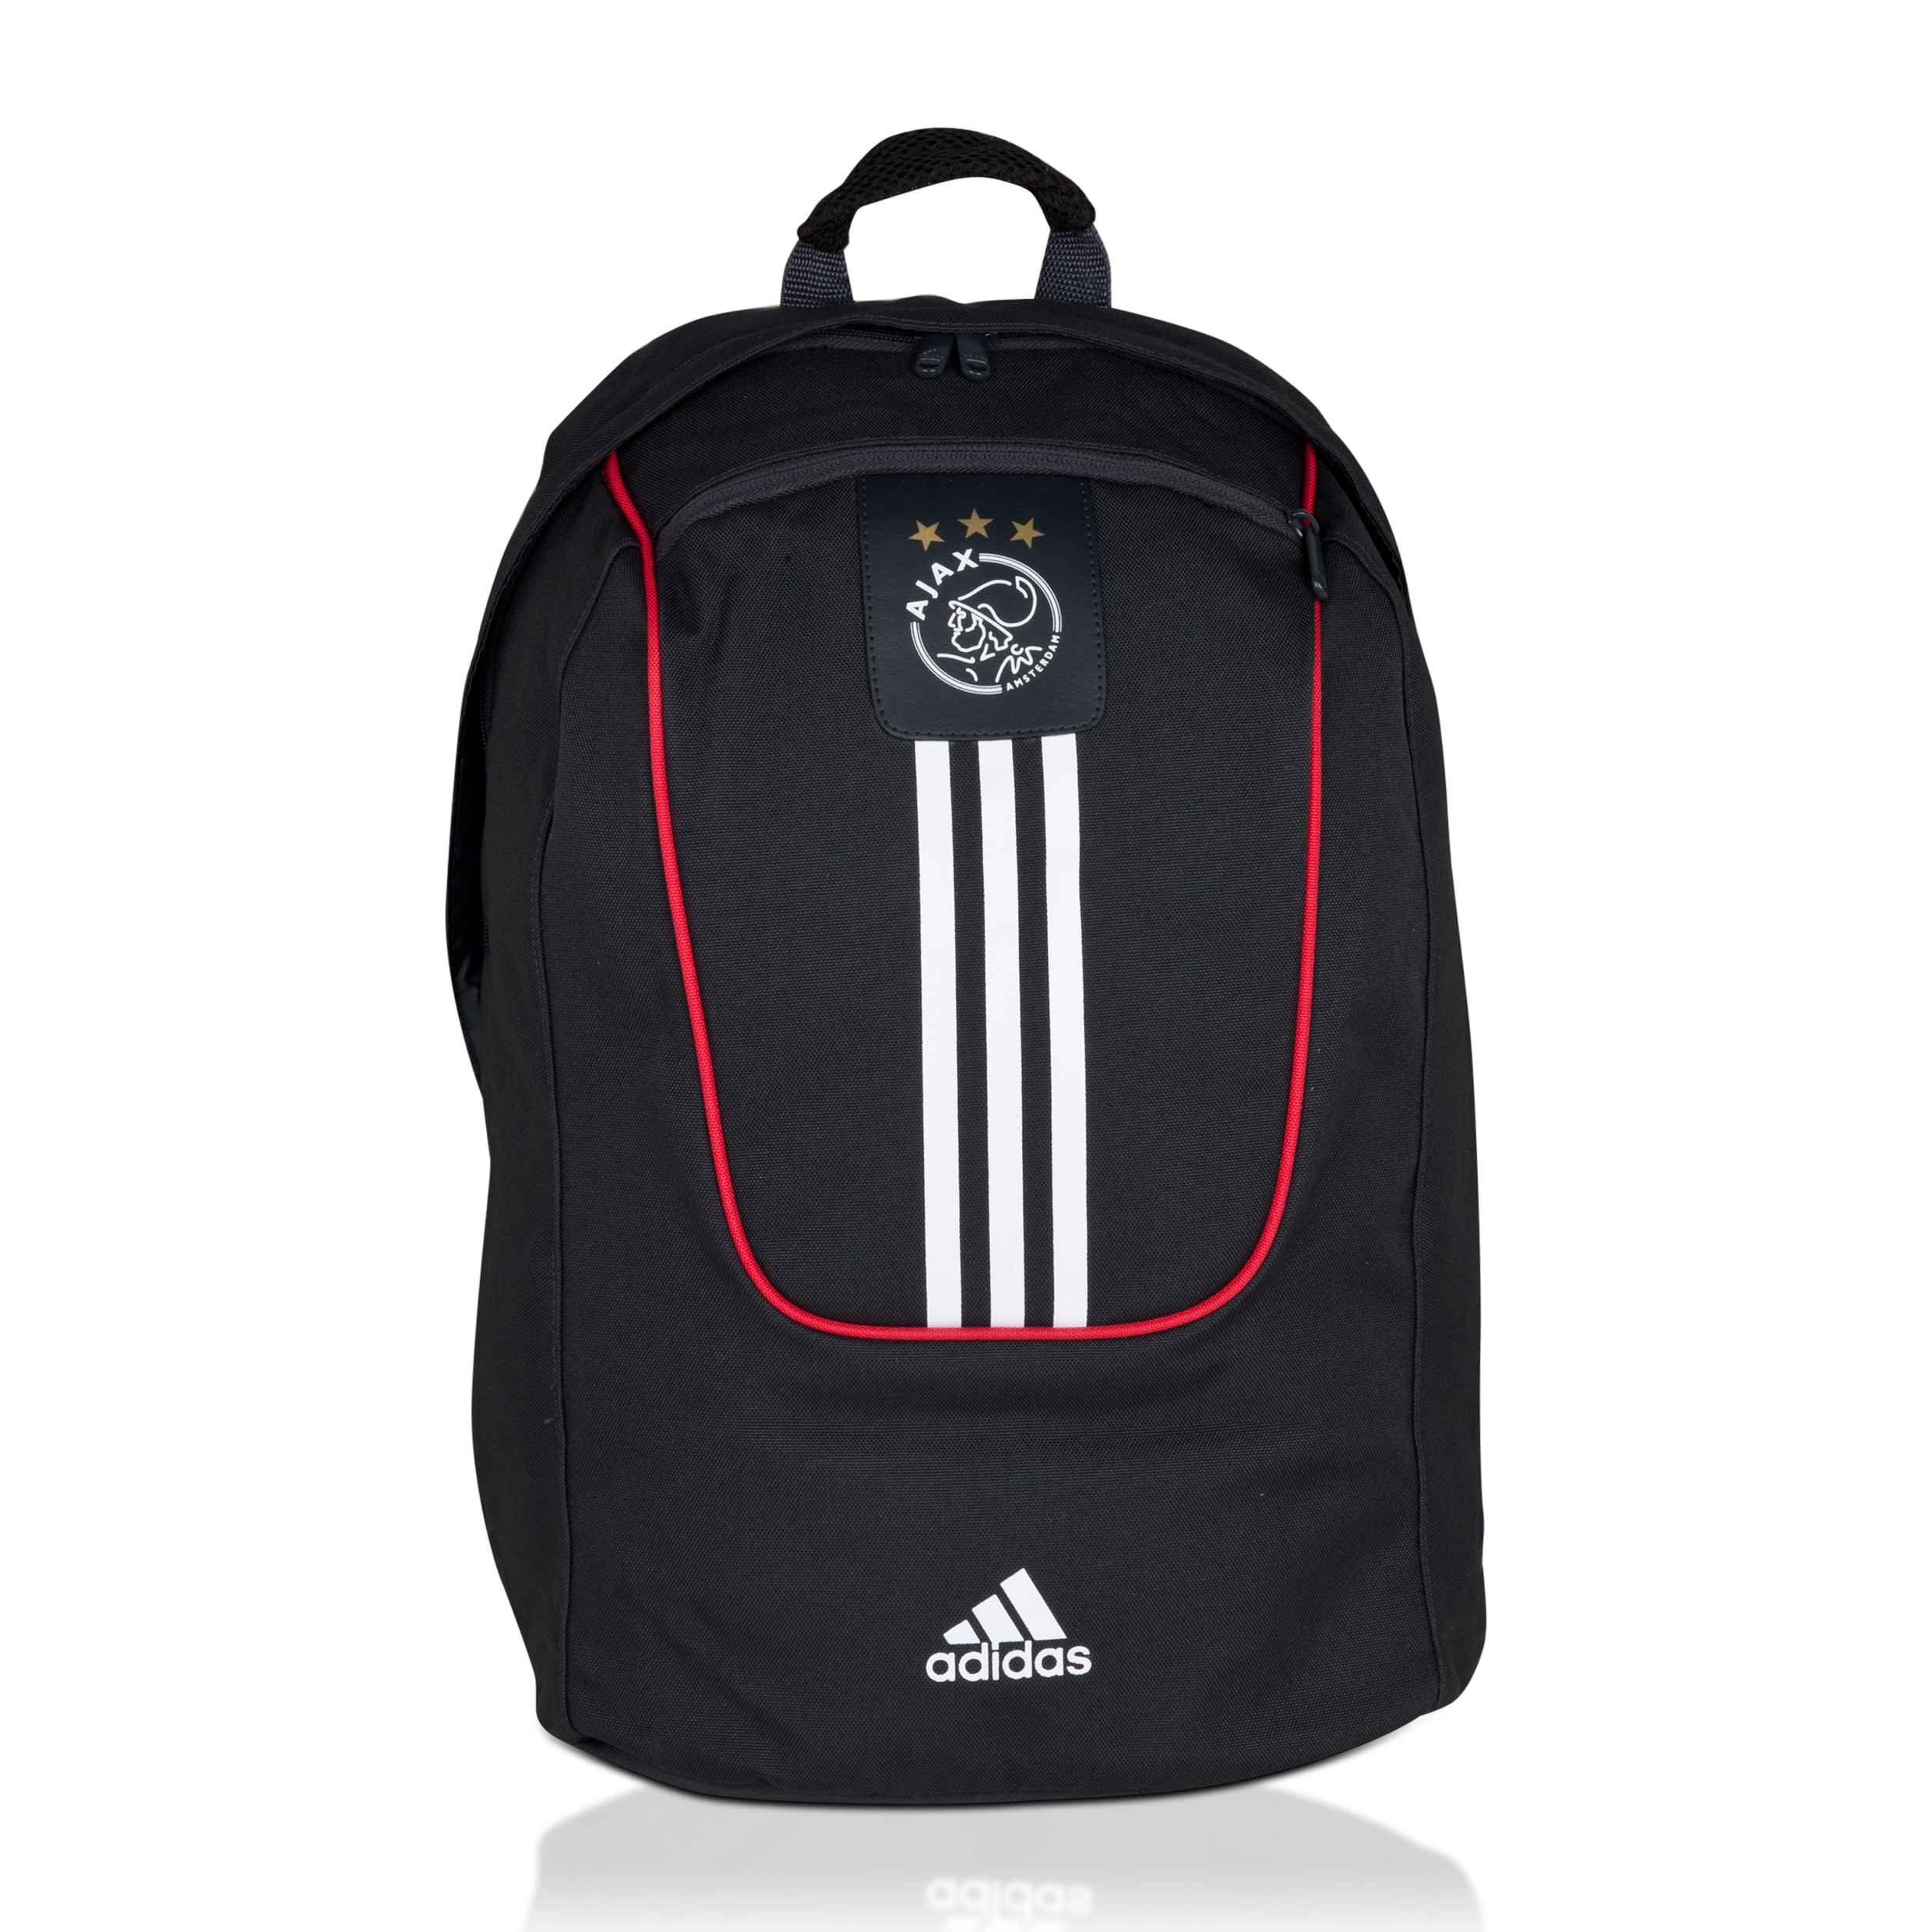 adidas Ajax Back Pack - Phantom S09/Toro